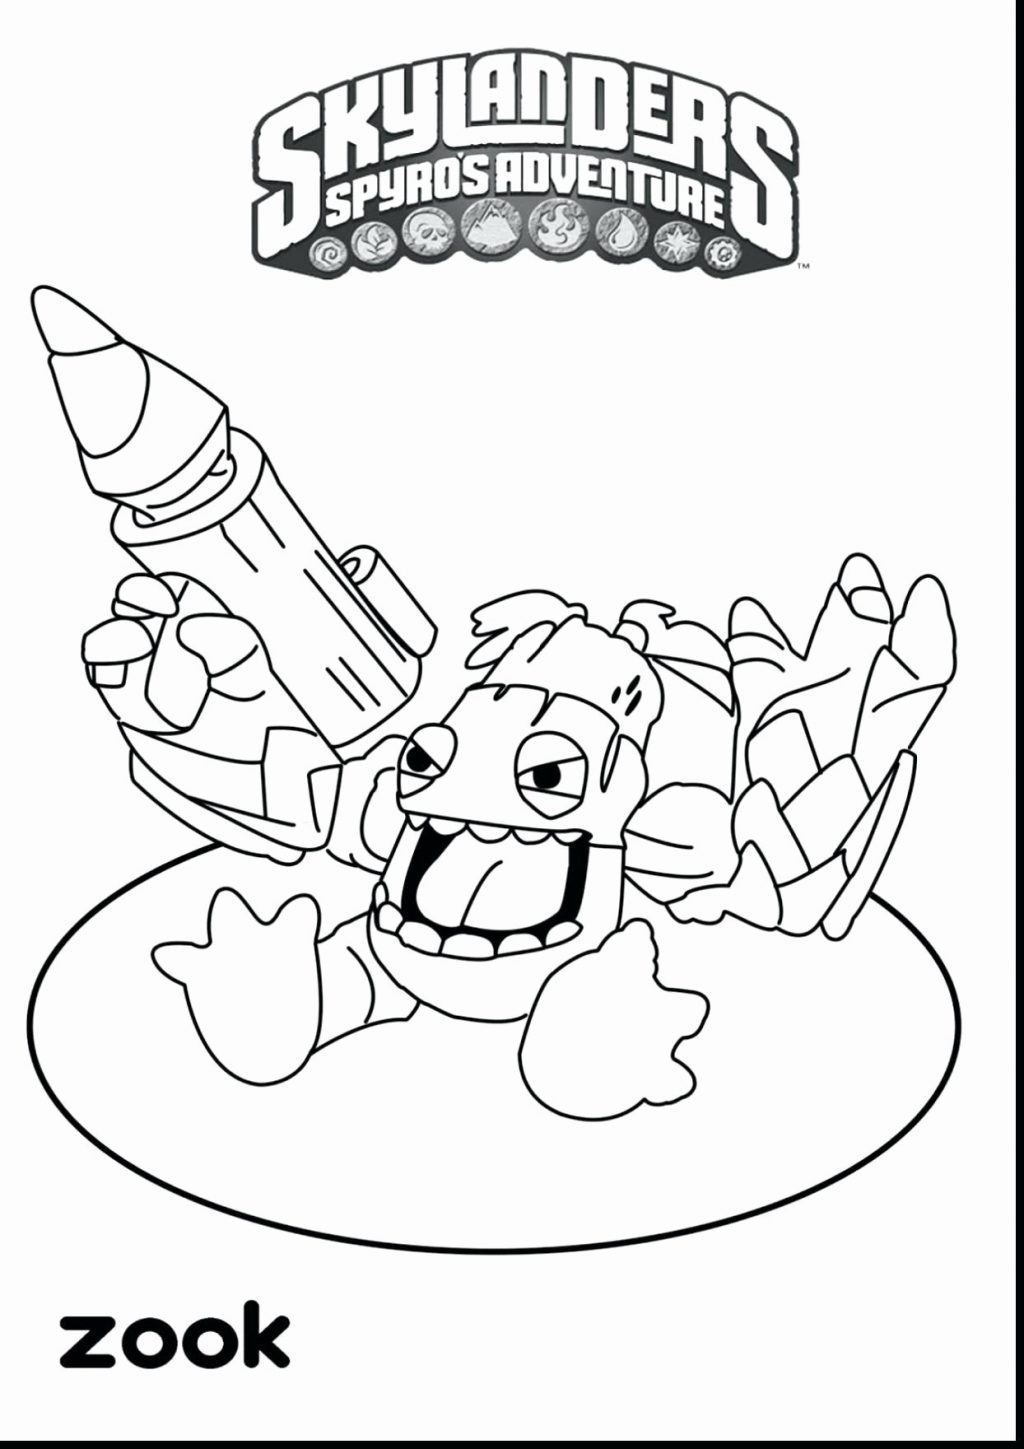 Turn Pictures Into Coloring Pages App Images Of Turn Picture Into